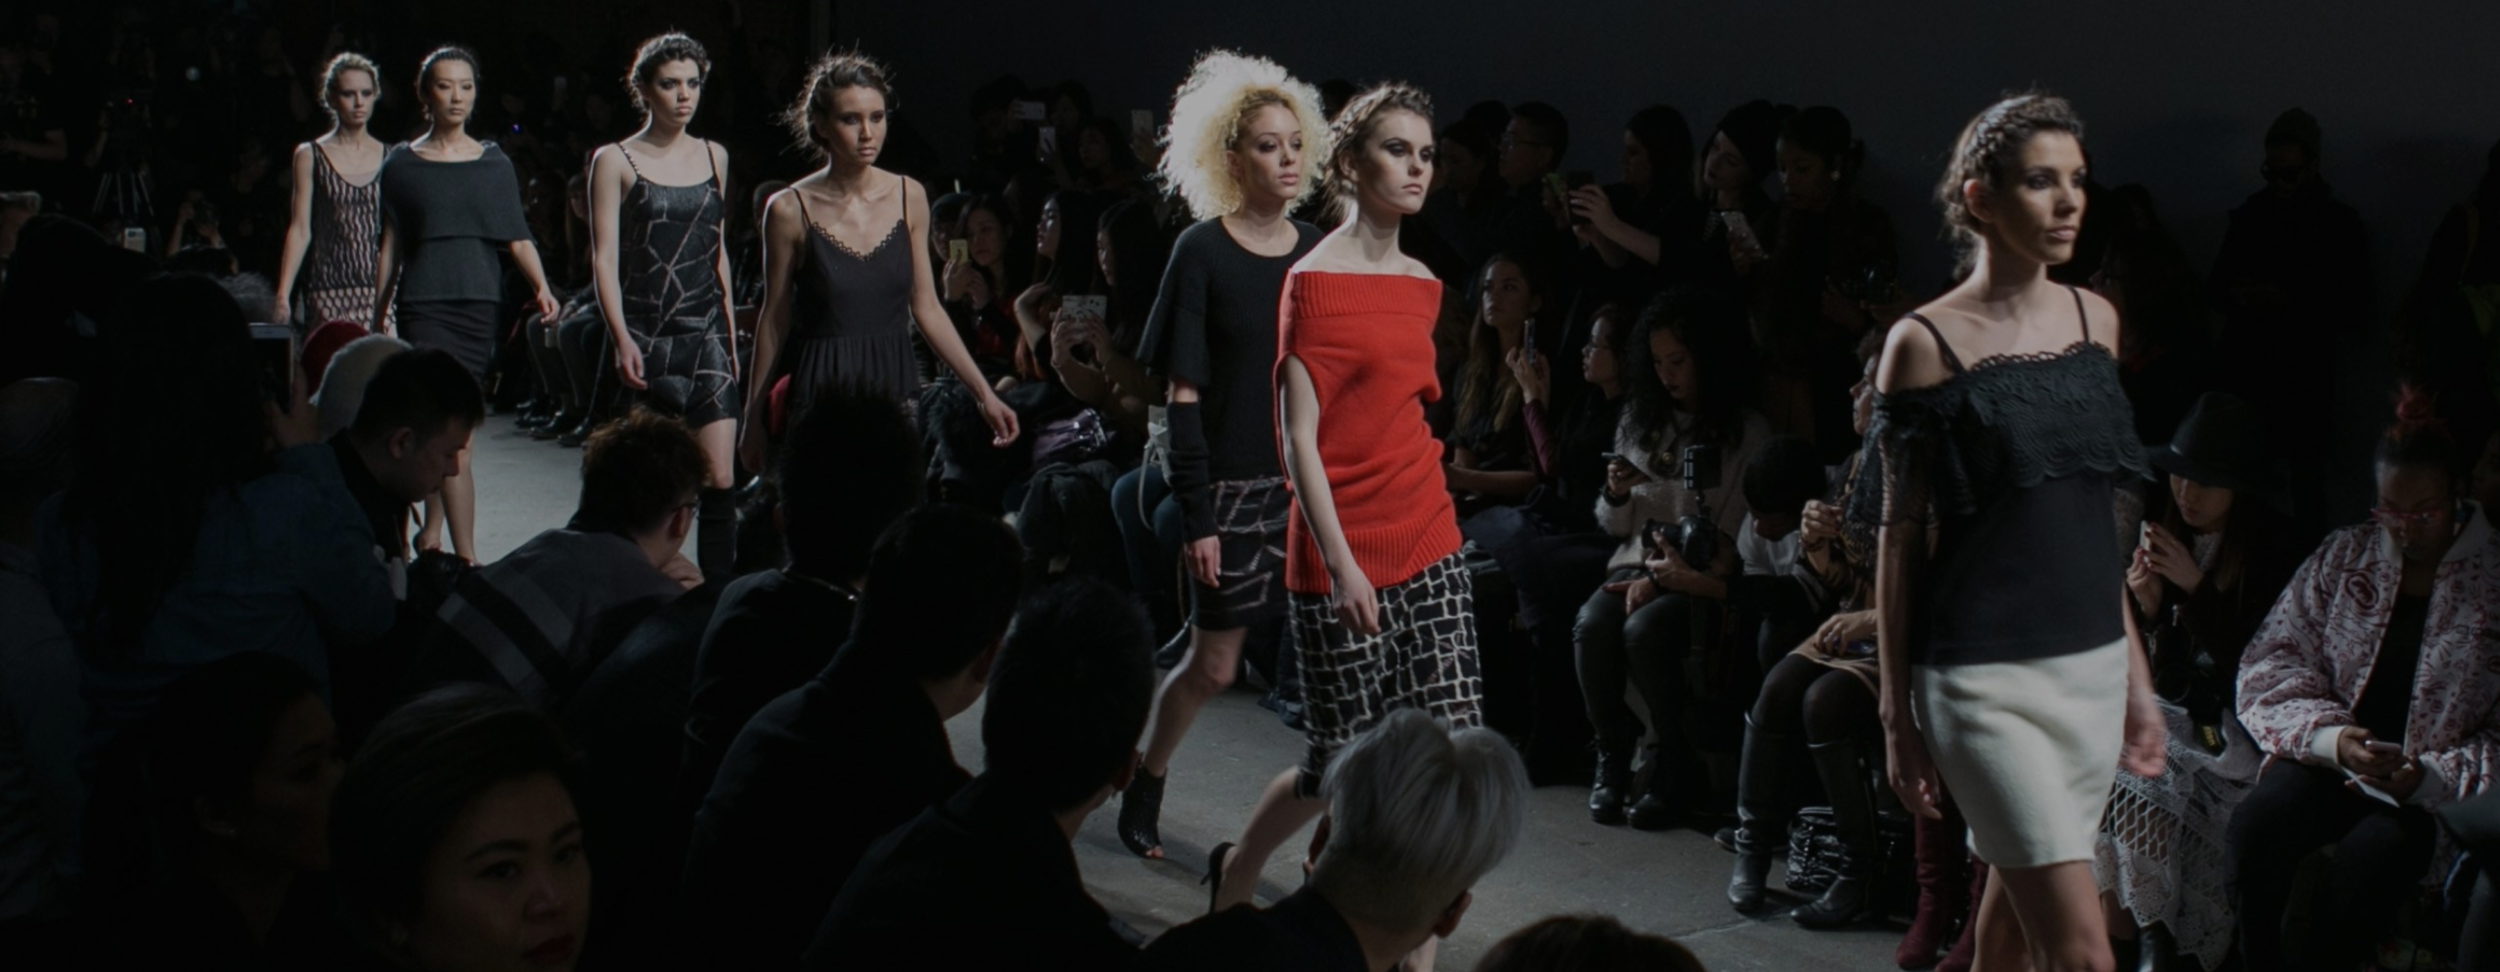 Minan Wong collection in Nolcha show, Fashion Week 2019. Minan Wong is one of several designers who use sustainable fabrics and fair trade production for their collections.